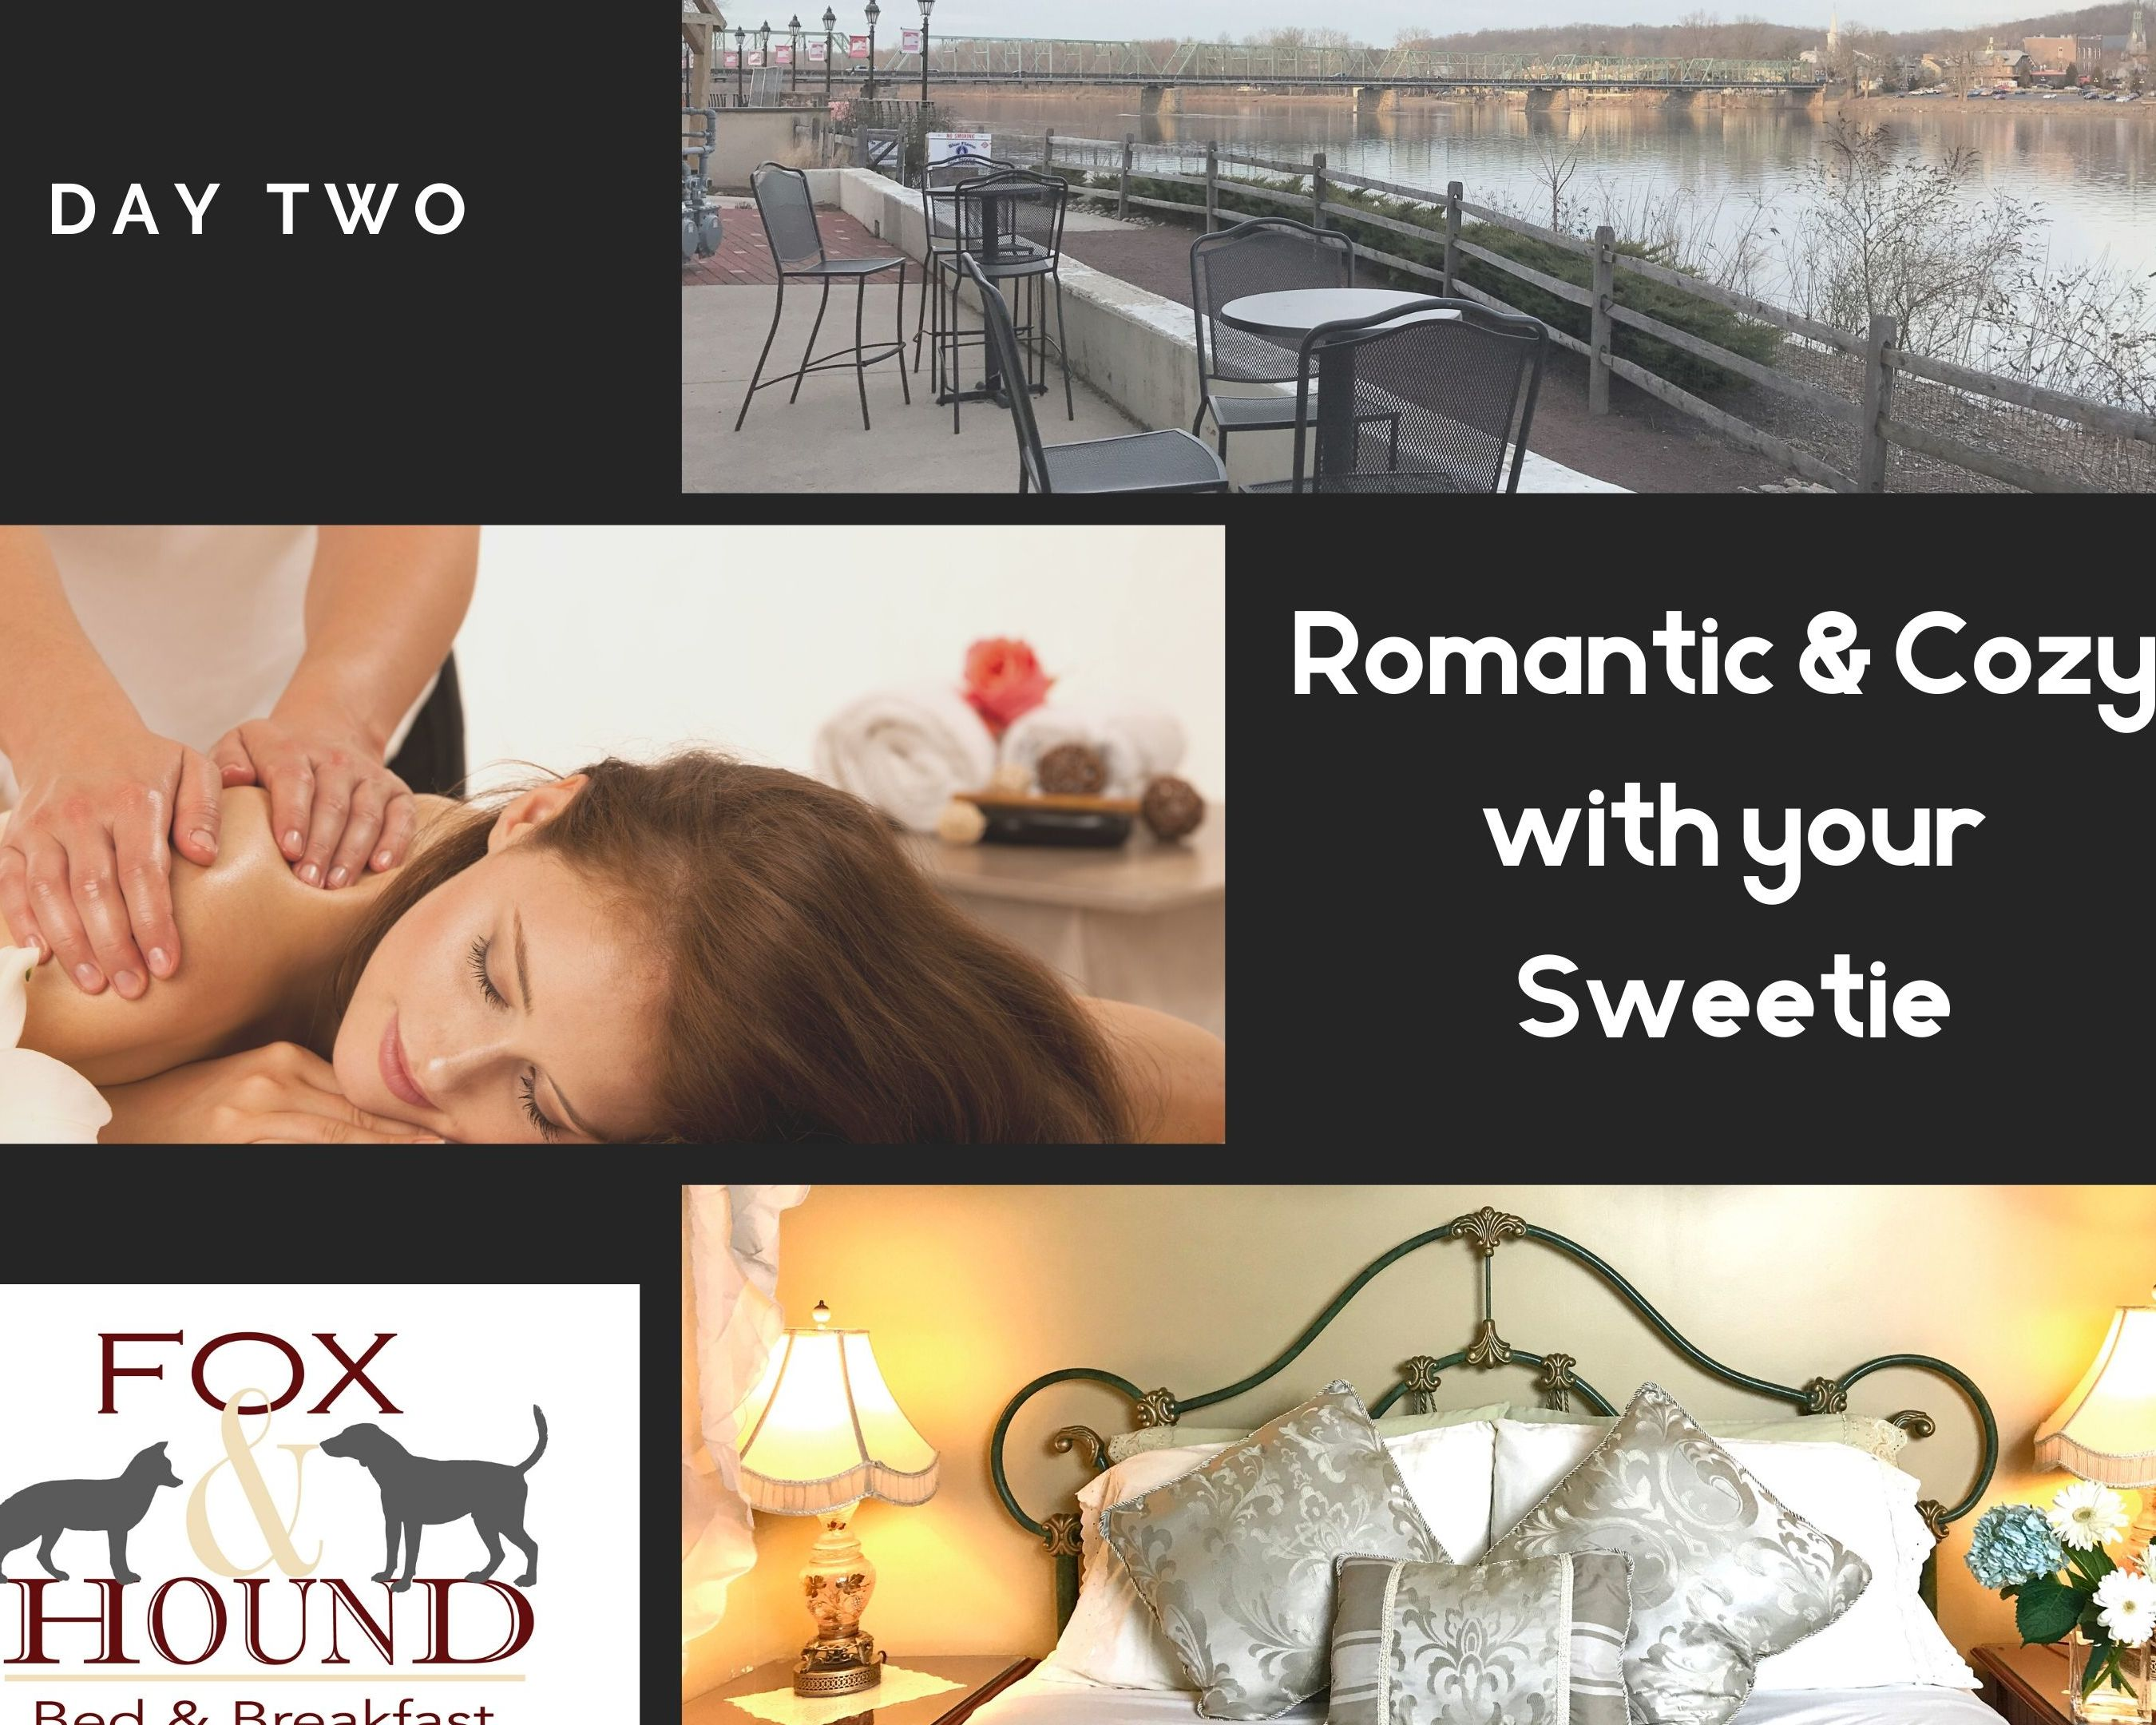 collage says Day two romantic and cozy and picture of river walk, lady getting a massage, a stylish bedroom at fox and hound